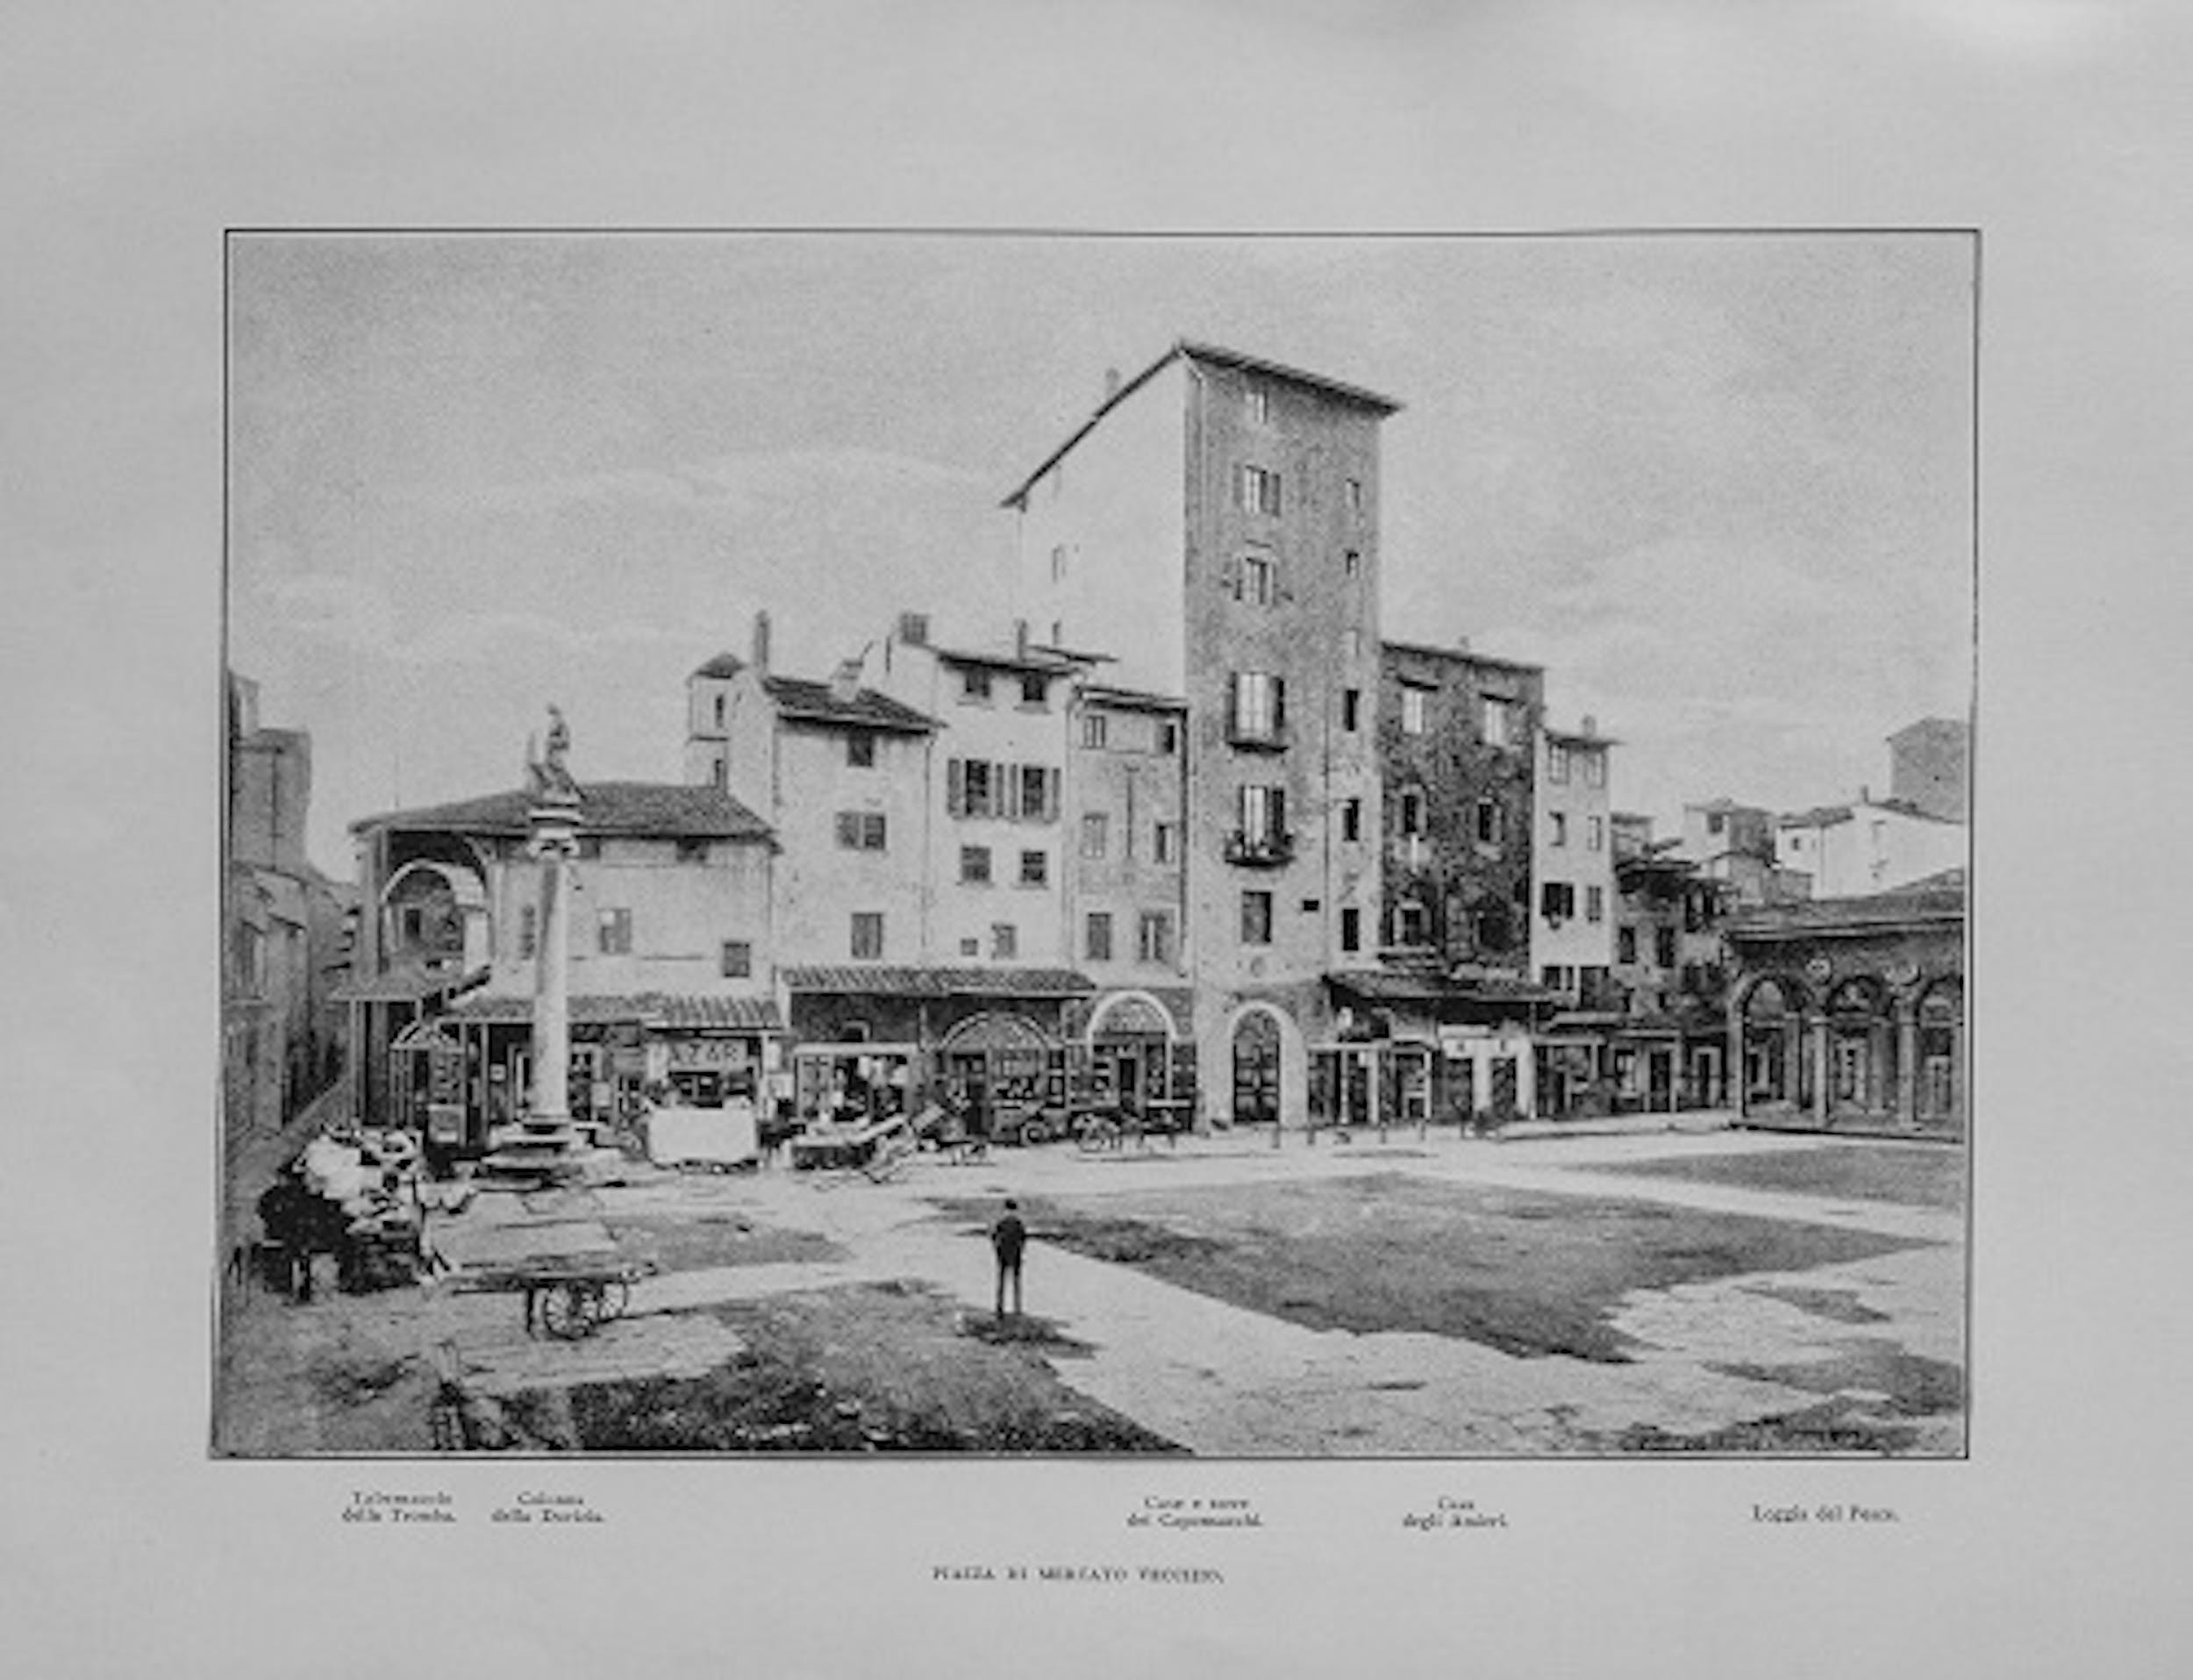 fig. 2 la Piazza del Mercato Vecchio di Firenze (attuale Piazza della Repubblica) com'era prima del 1885 (tratto da Commissione Storica Artistica Comunale 1900, [13]) - Piazza del Mercato Vecchio in Florence (now Piazza della Repubblica) as it was before 1885 (from: Municipal Historical and Artistic Commission 1900, [13]).